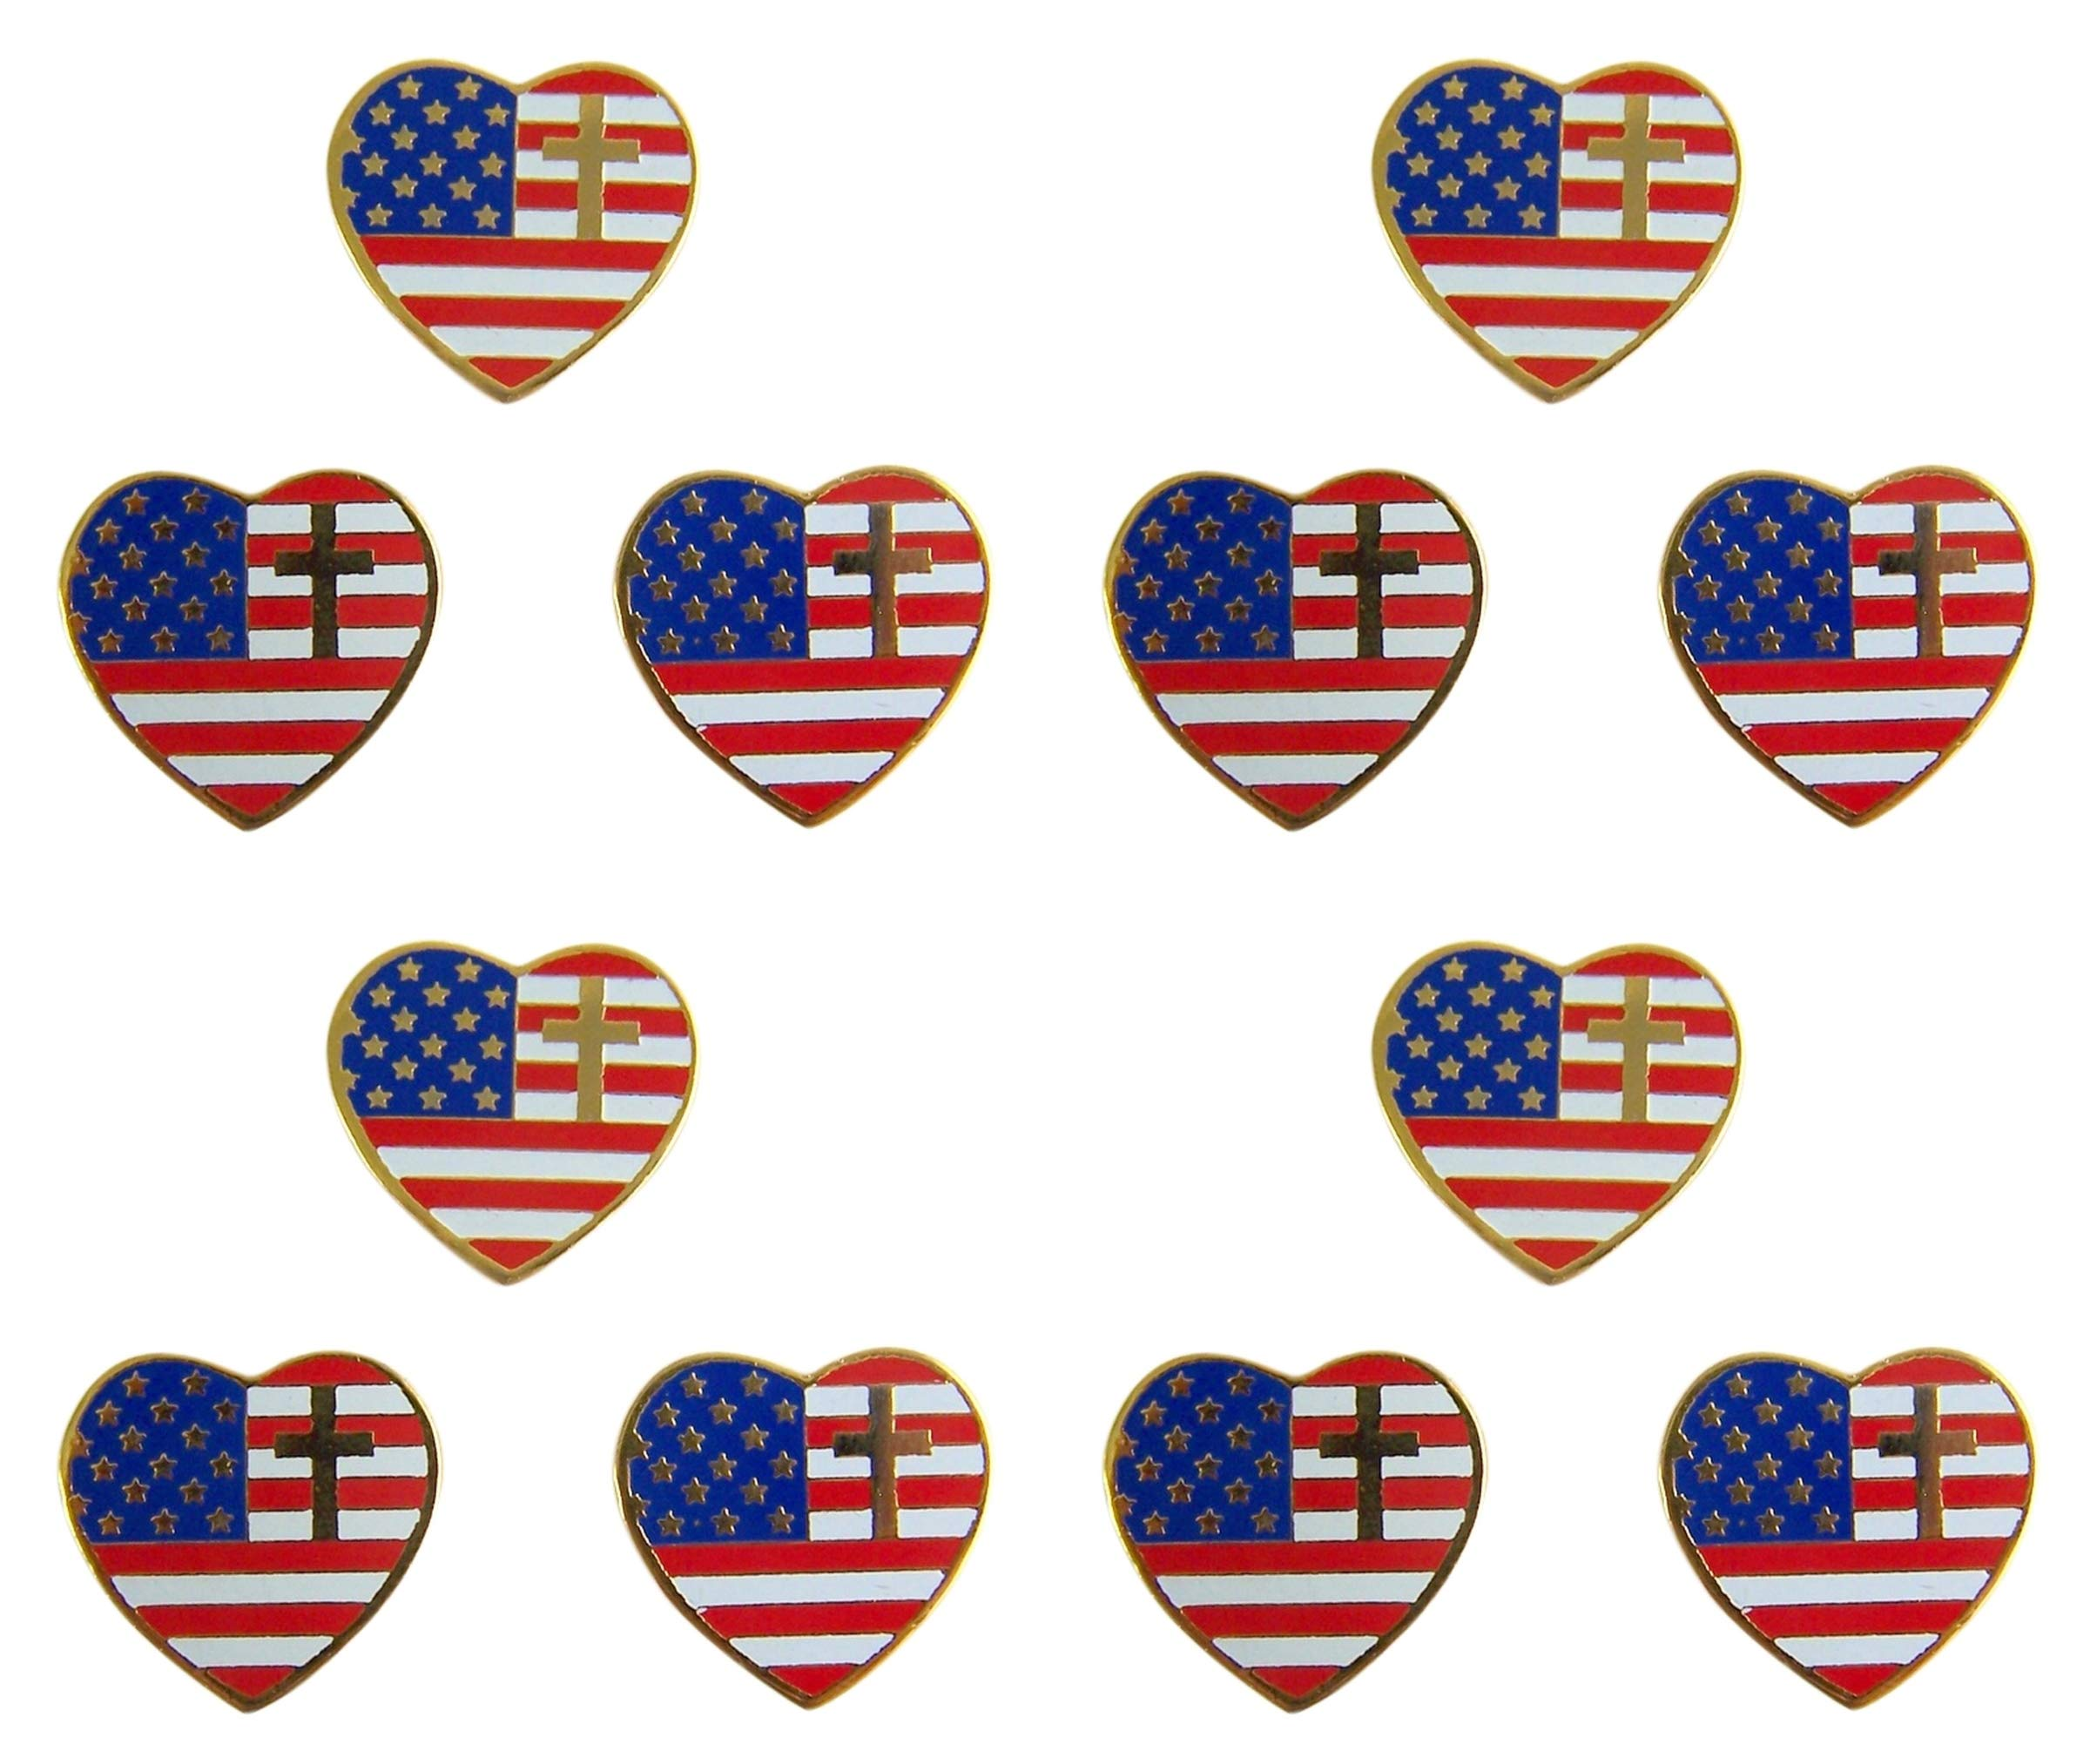 Religious Heart Shaped American Flag with Cross Lapel Pin, 3/4 Inch, Pack of 12